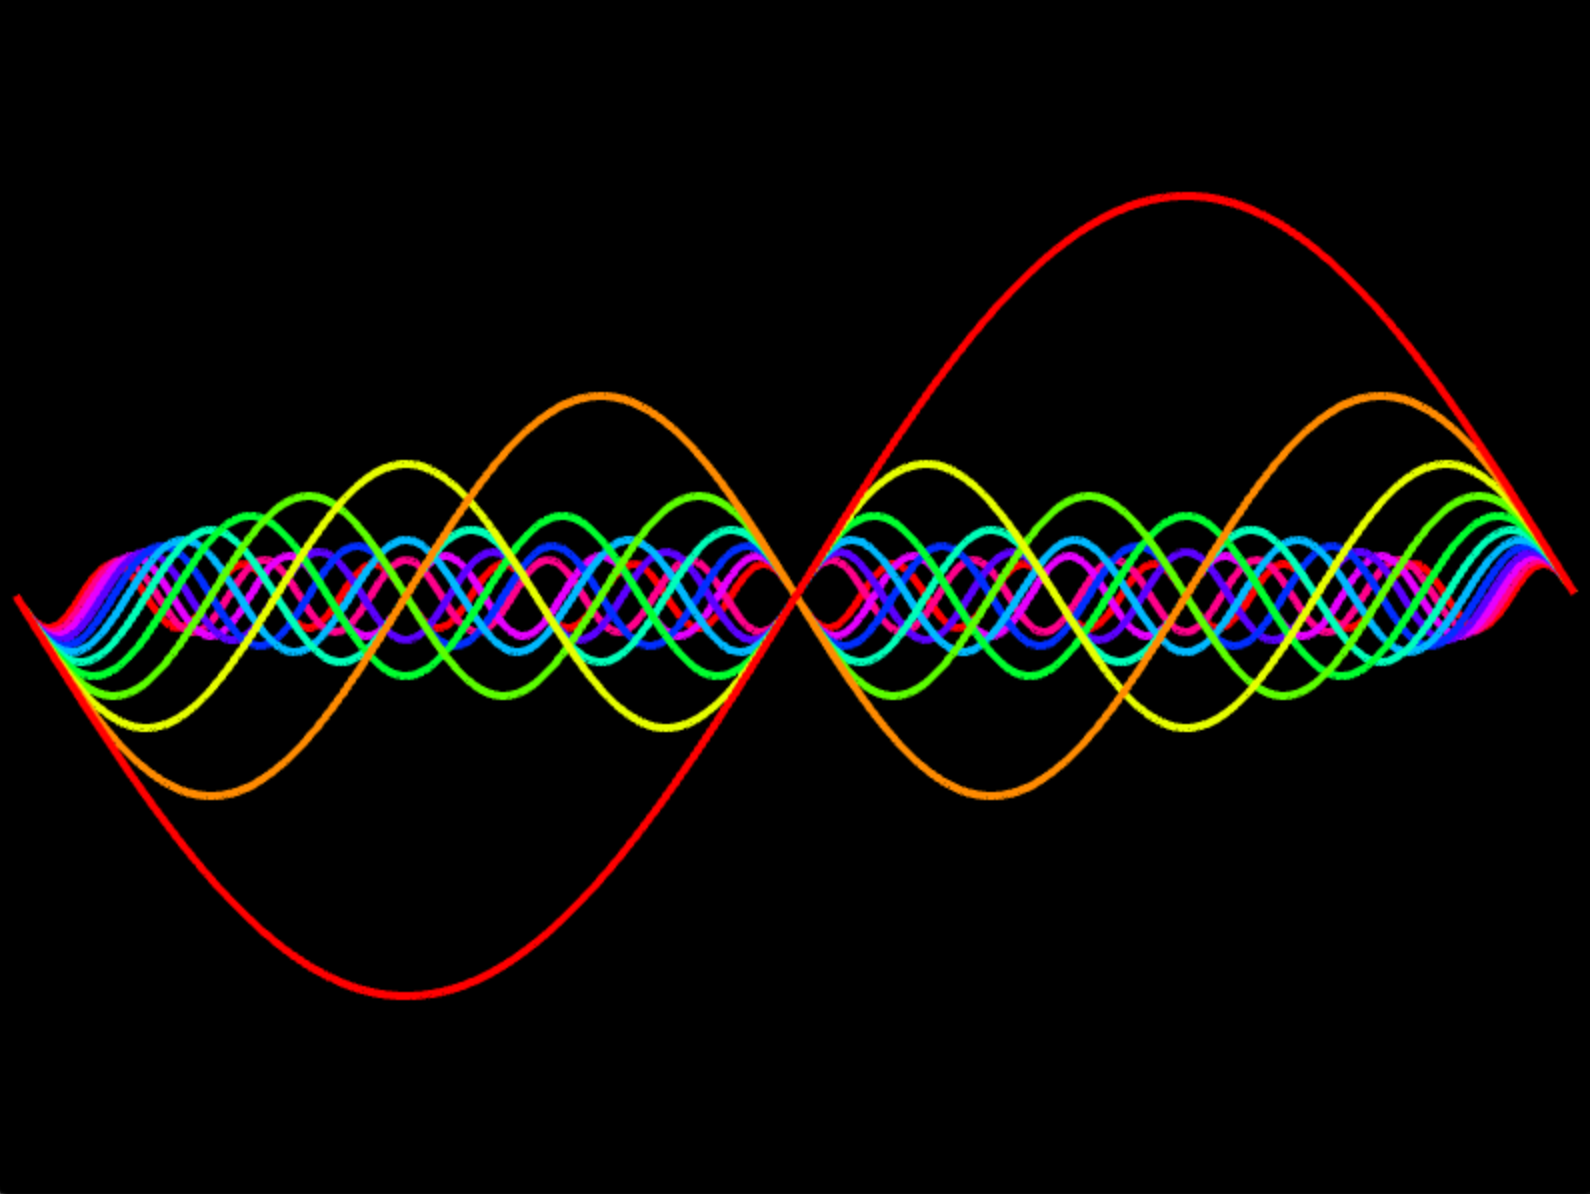 Sinusoidal wave forms in harmonic frequencies